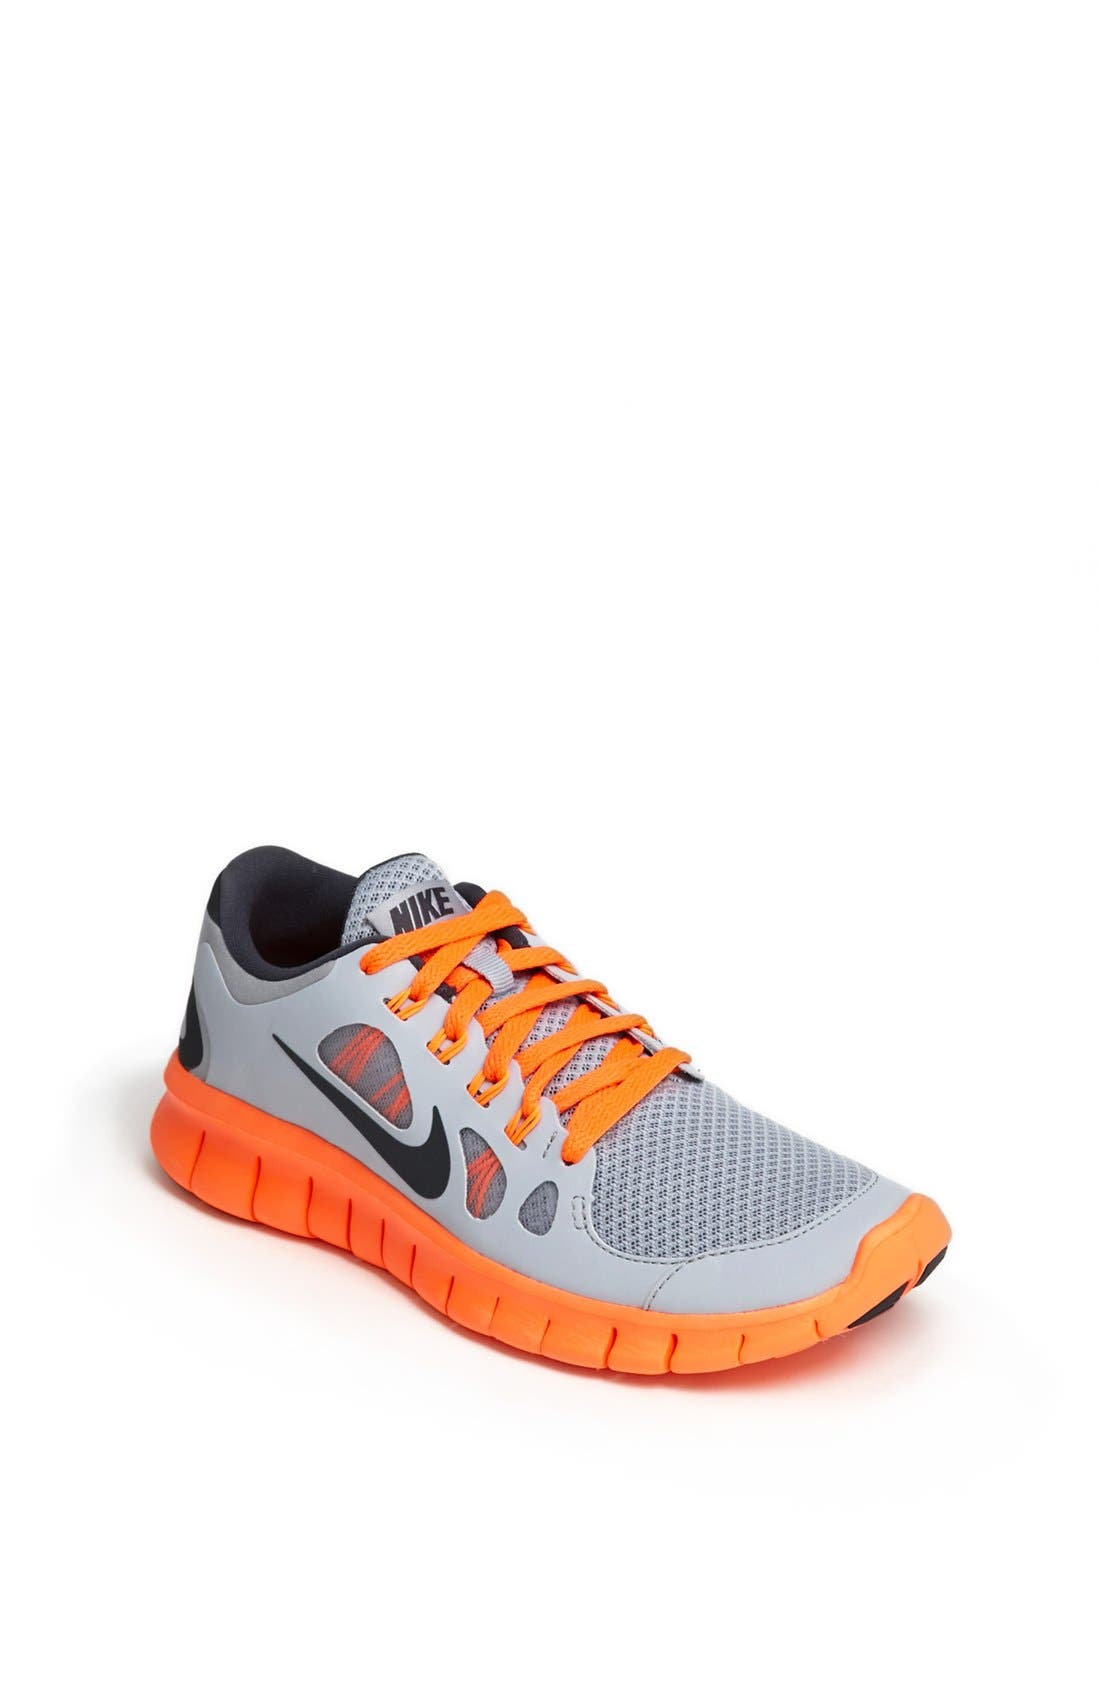 Main Image - Nike 'Free Run 5.0' Running Shoe (Big Kid)